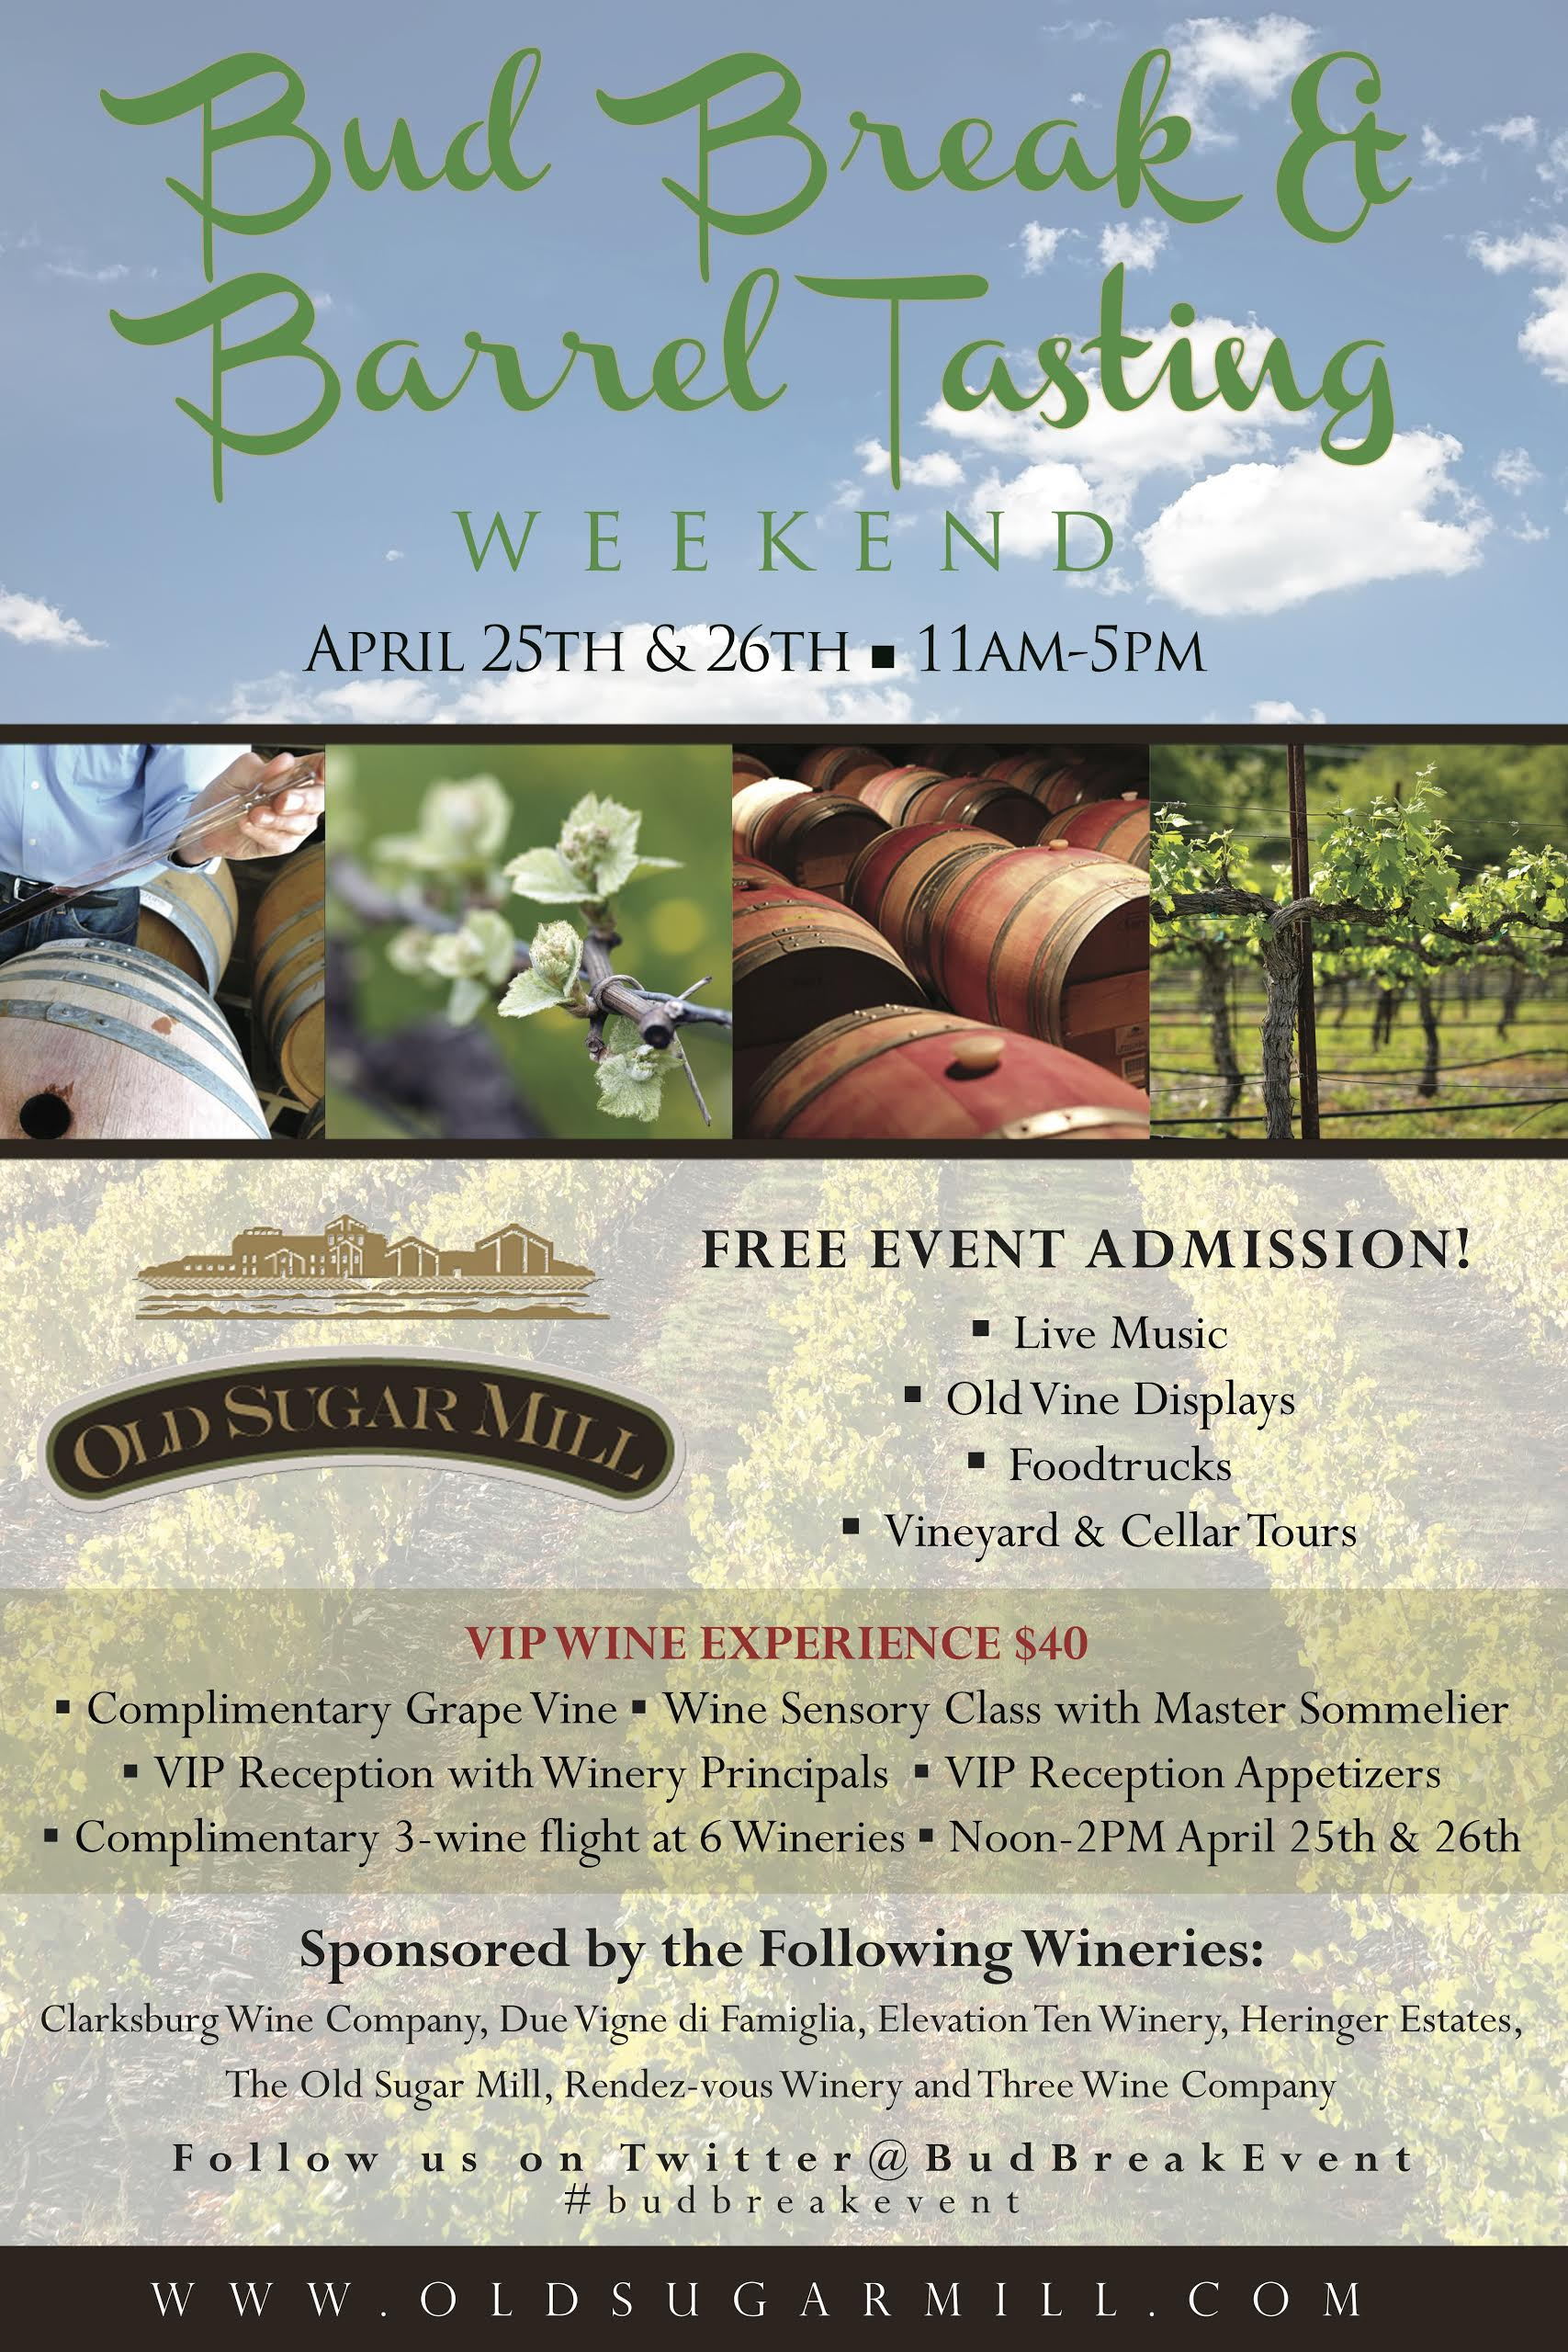 Bud Break & Barrel Tasting Weekend